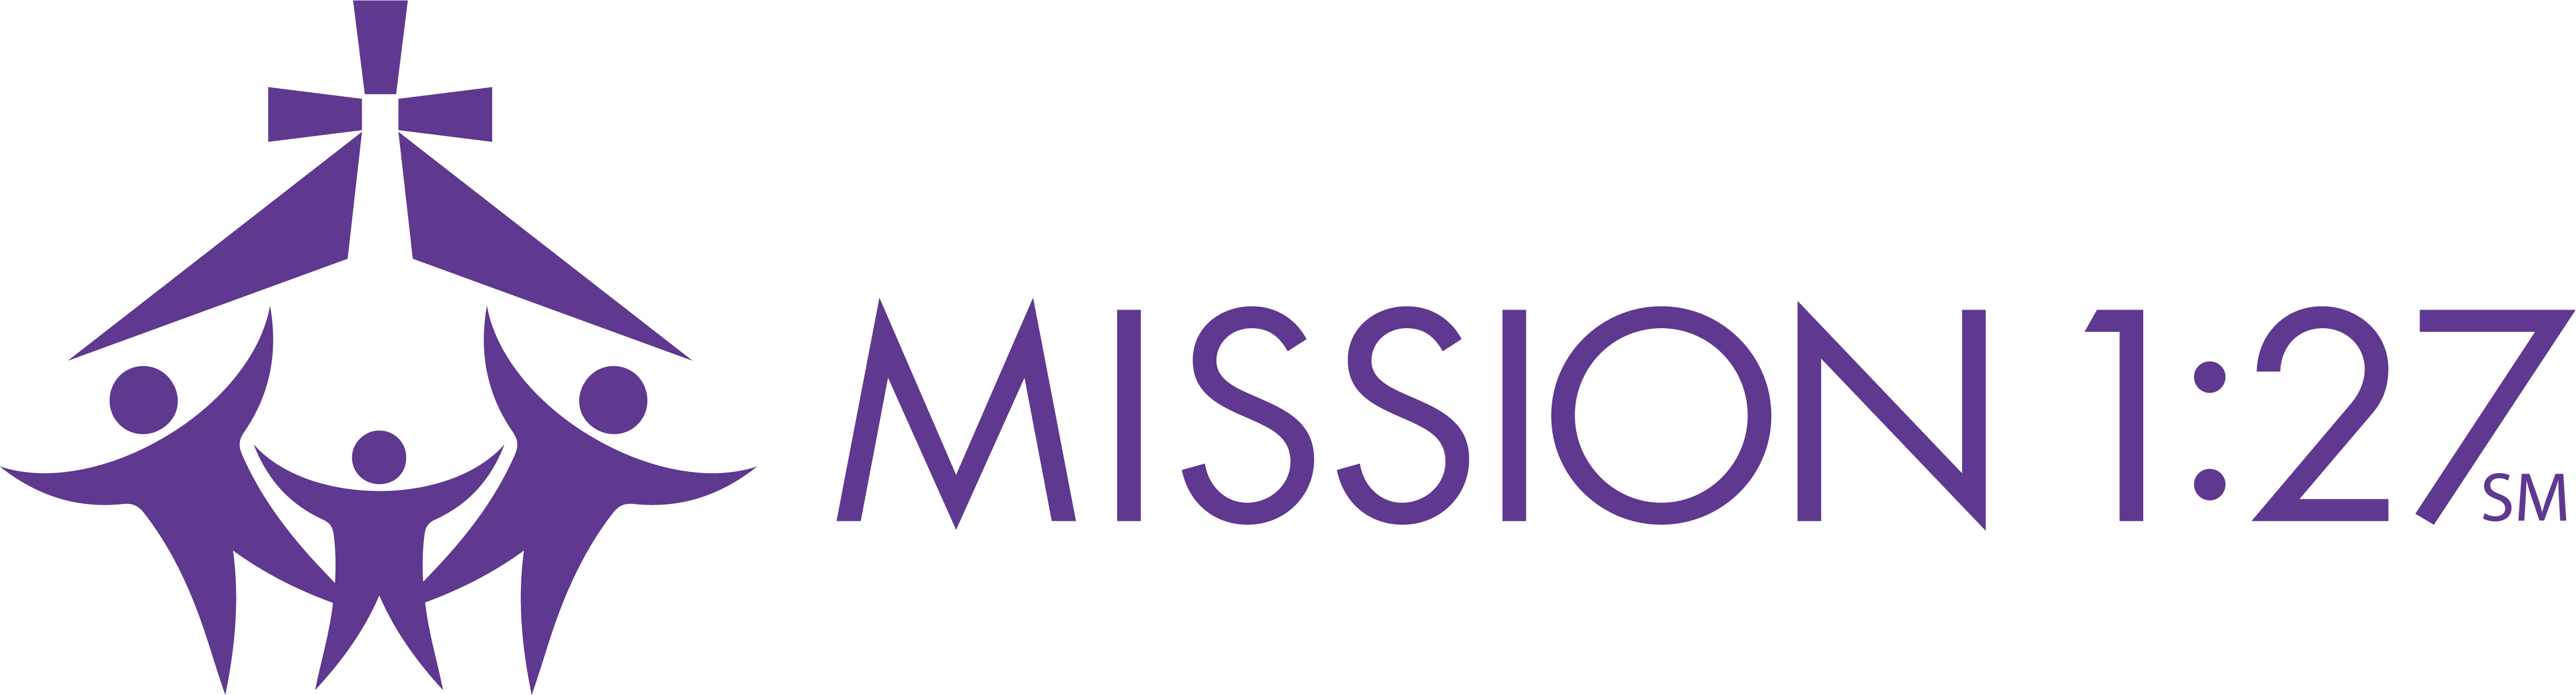 Mission127 Logo Horizontal No Tagline Purple